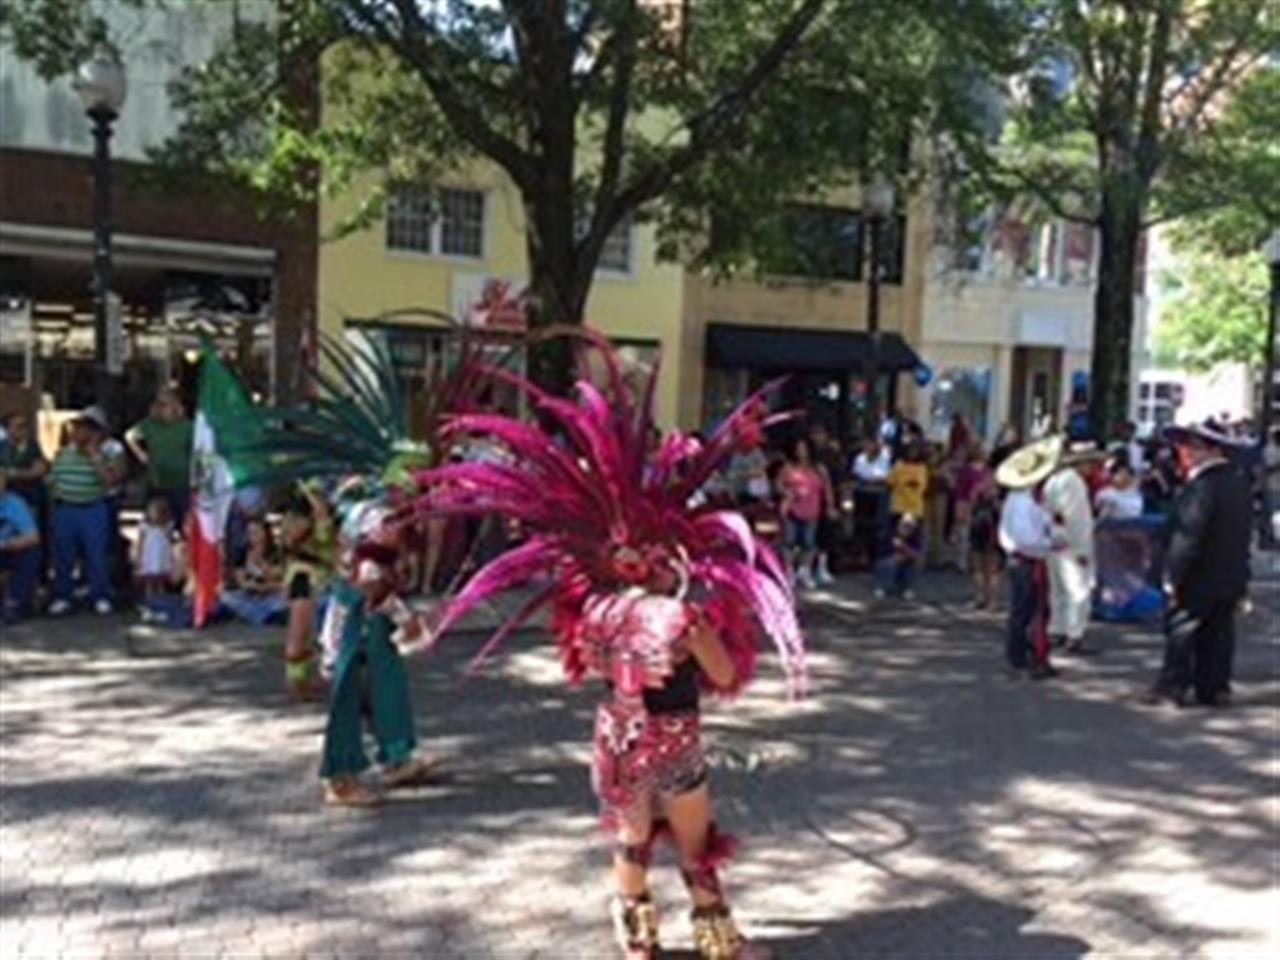 Scene from the International Folk Festival Parade.  Submitted by Townsend Real Estate.